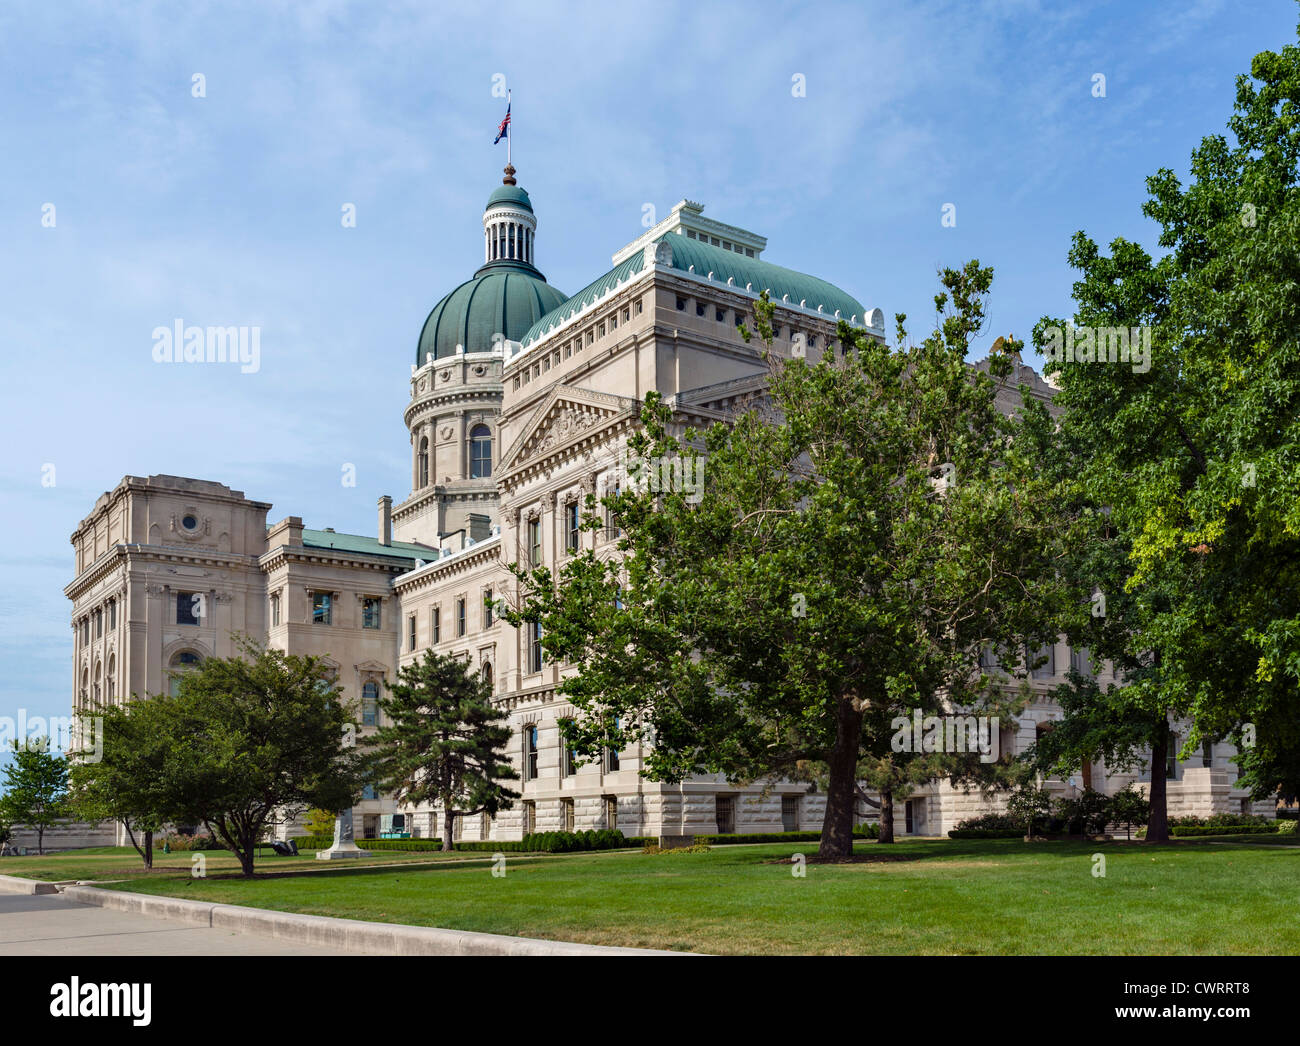 The Indiana Statehouse (State Capitol), Indianapolis, Indiana, USA - Stock Image